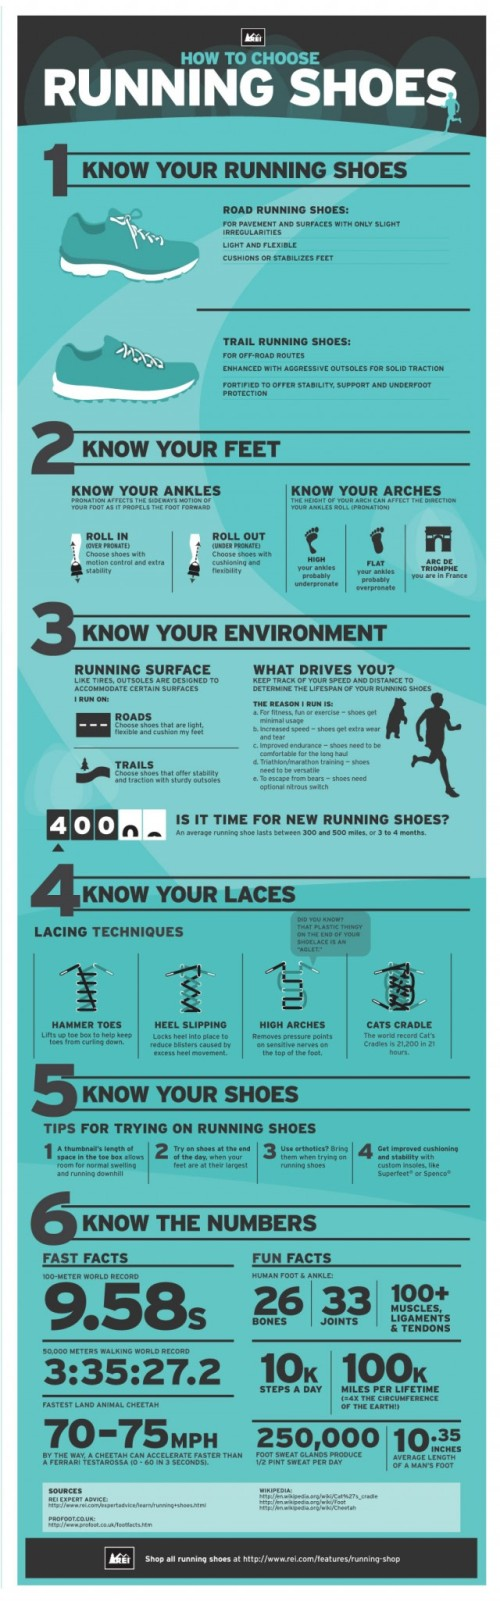 Running shoes infographic